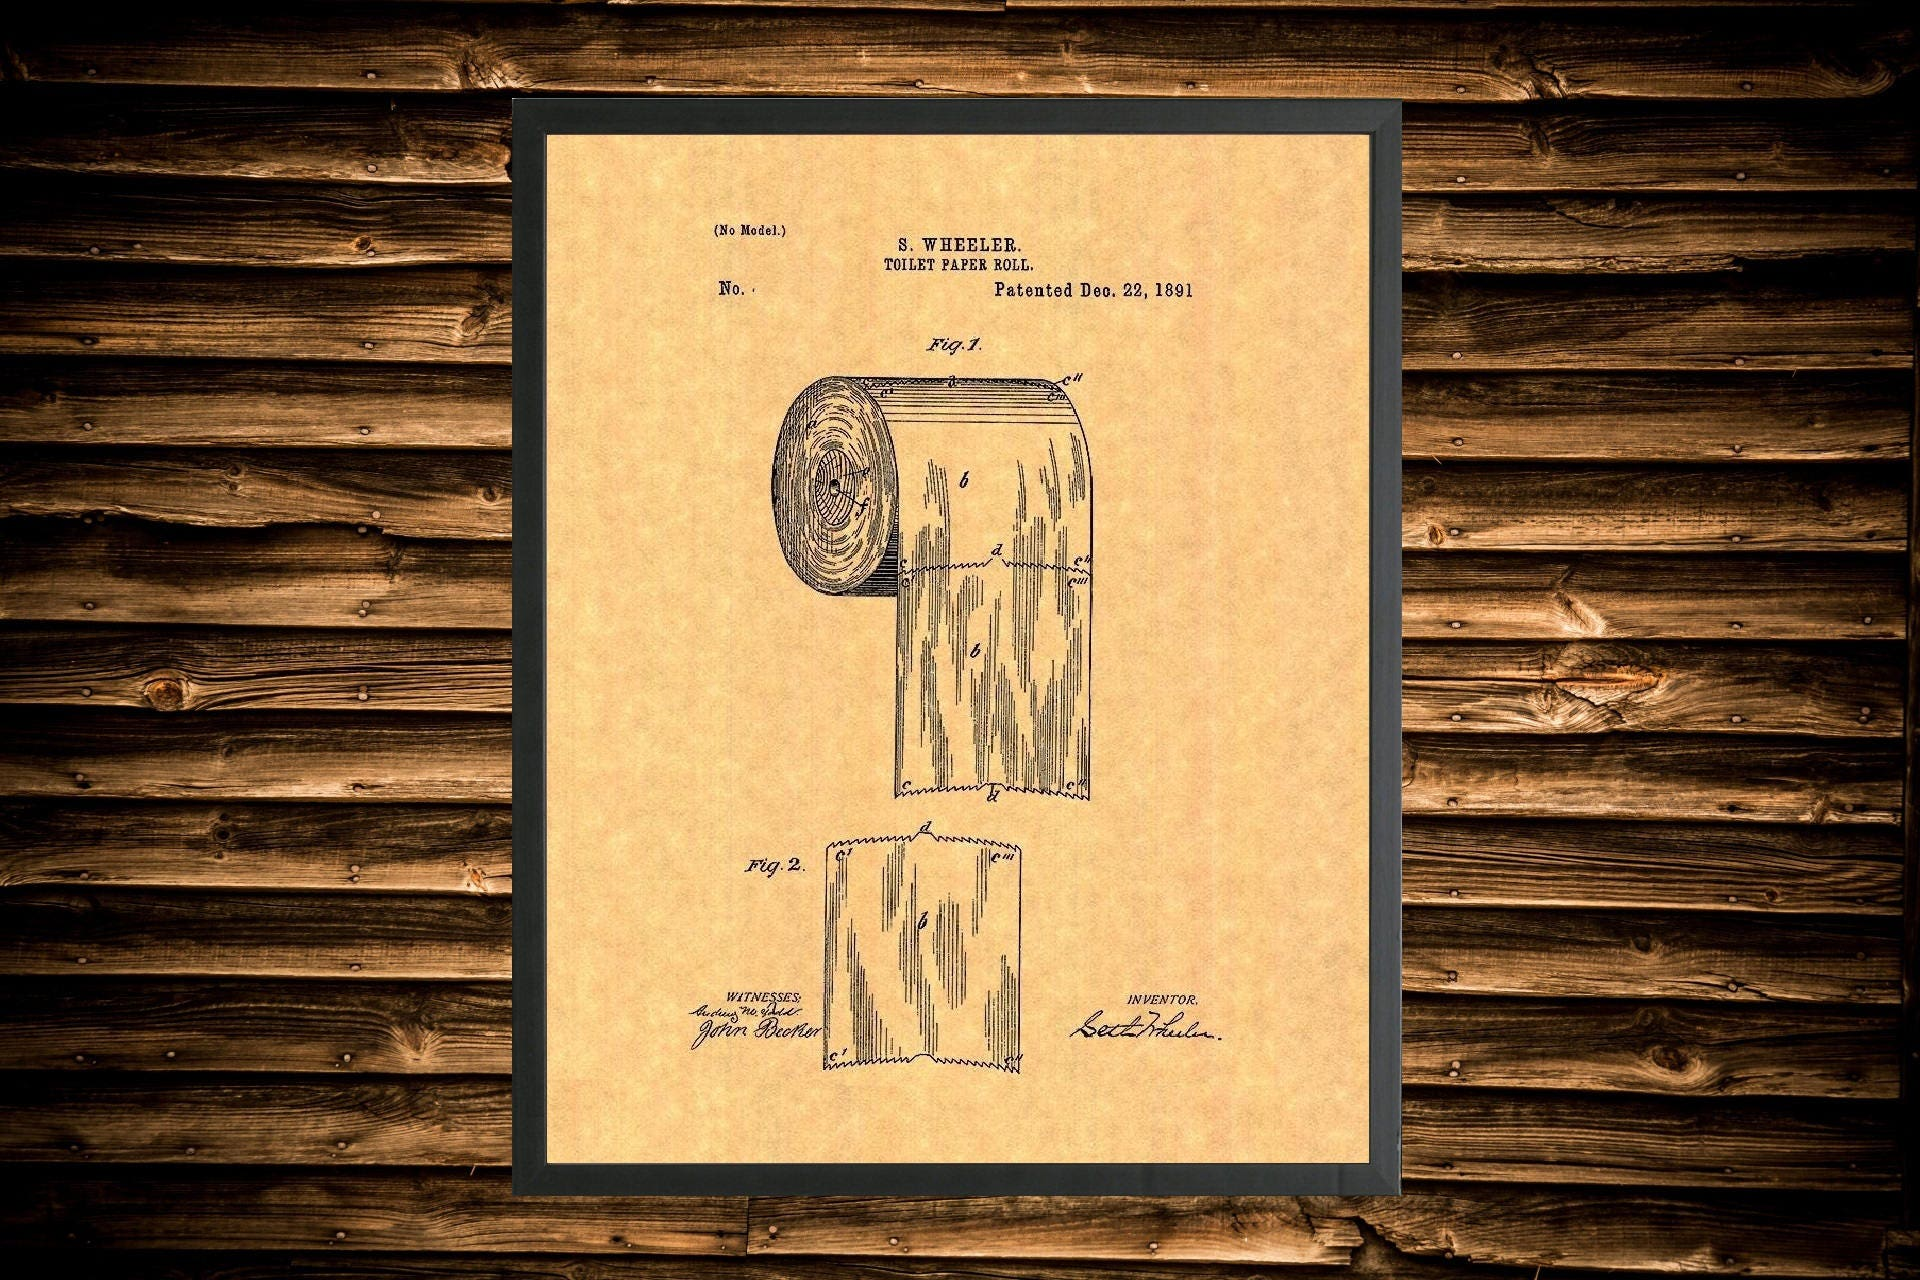 Framed Toilet Paper Roll Patent Print Multiple Sized Frames | Etsy